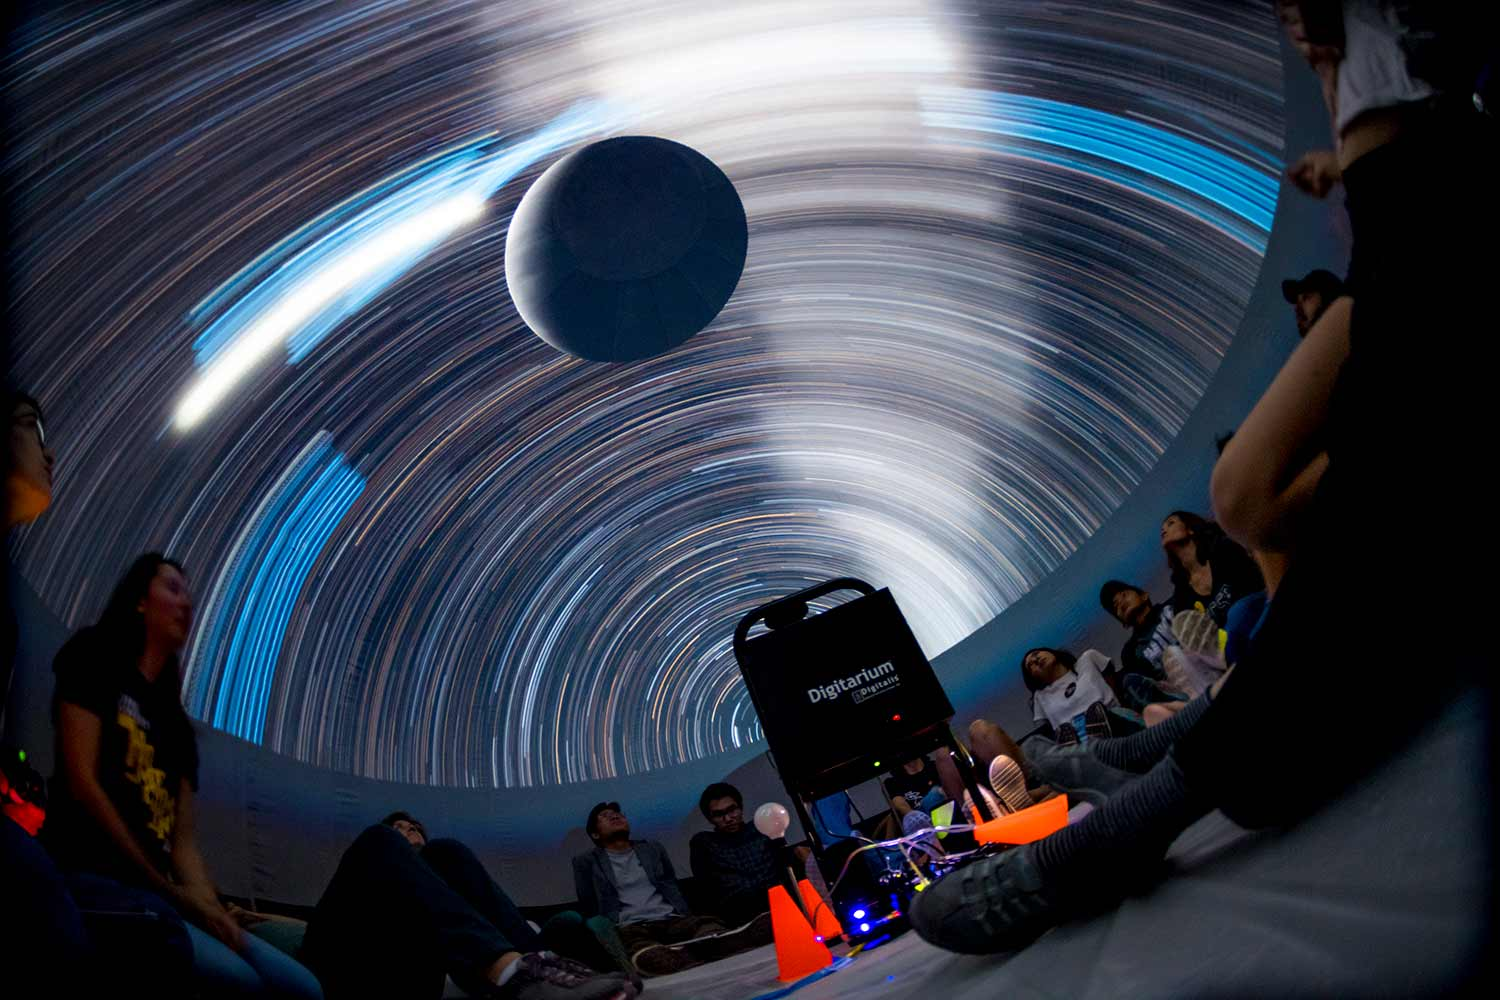 Indoor Stargazing: Planetarium Night at the Library